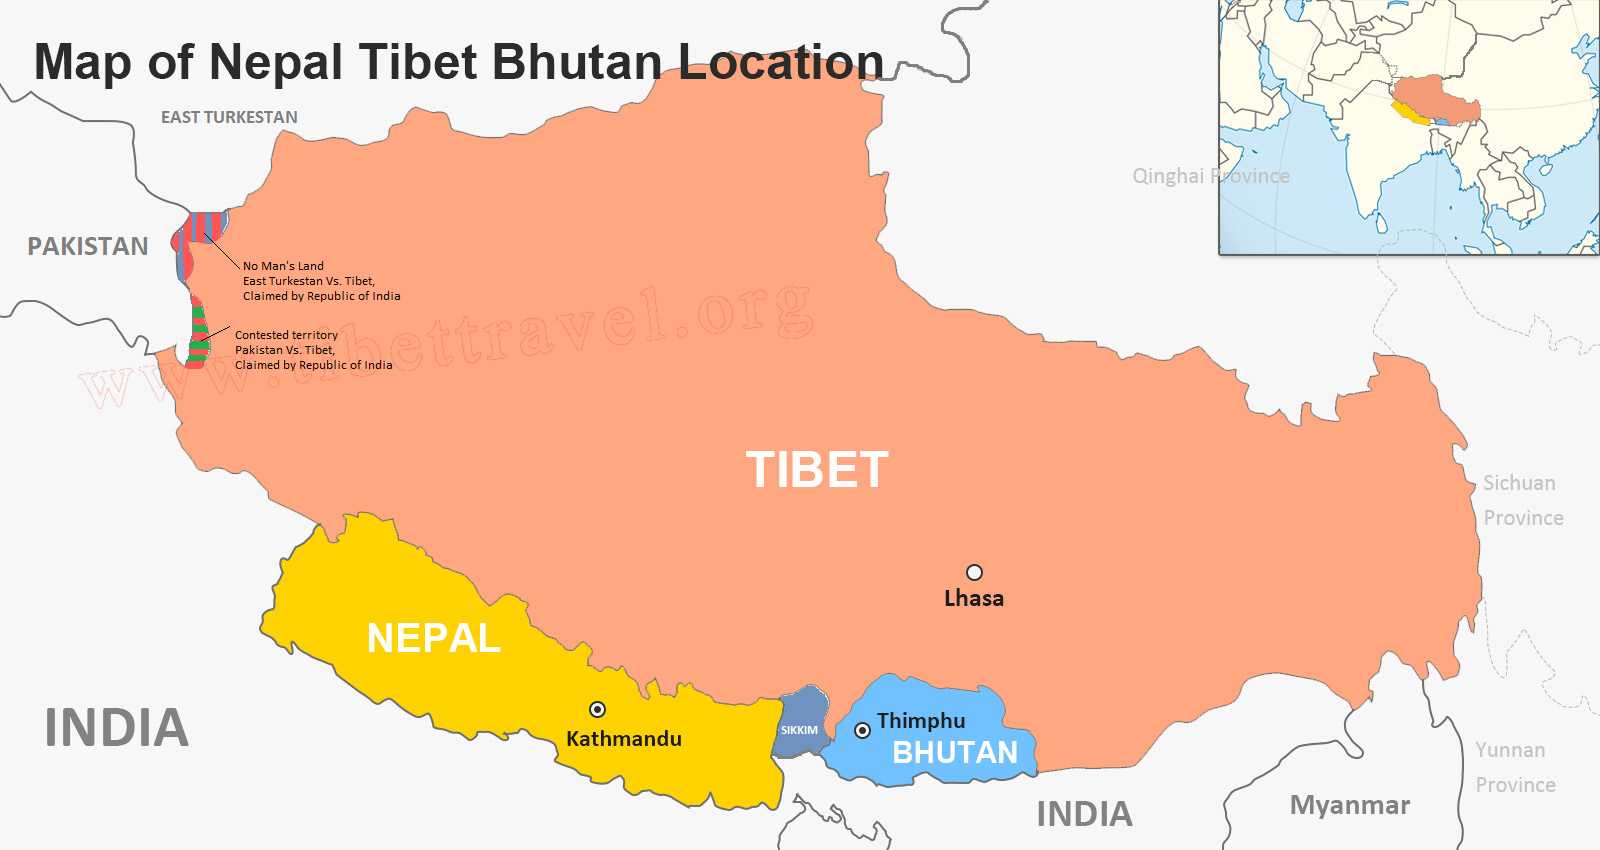 File:Map of Himalayan States of Bhutan, Nepal, Sikkim and